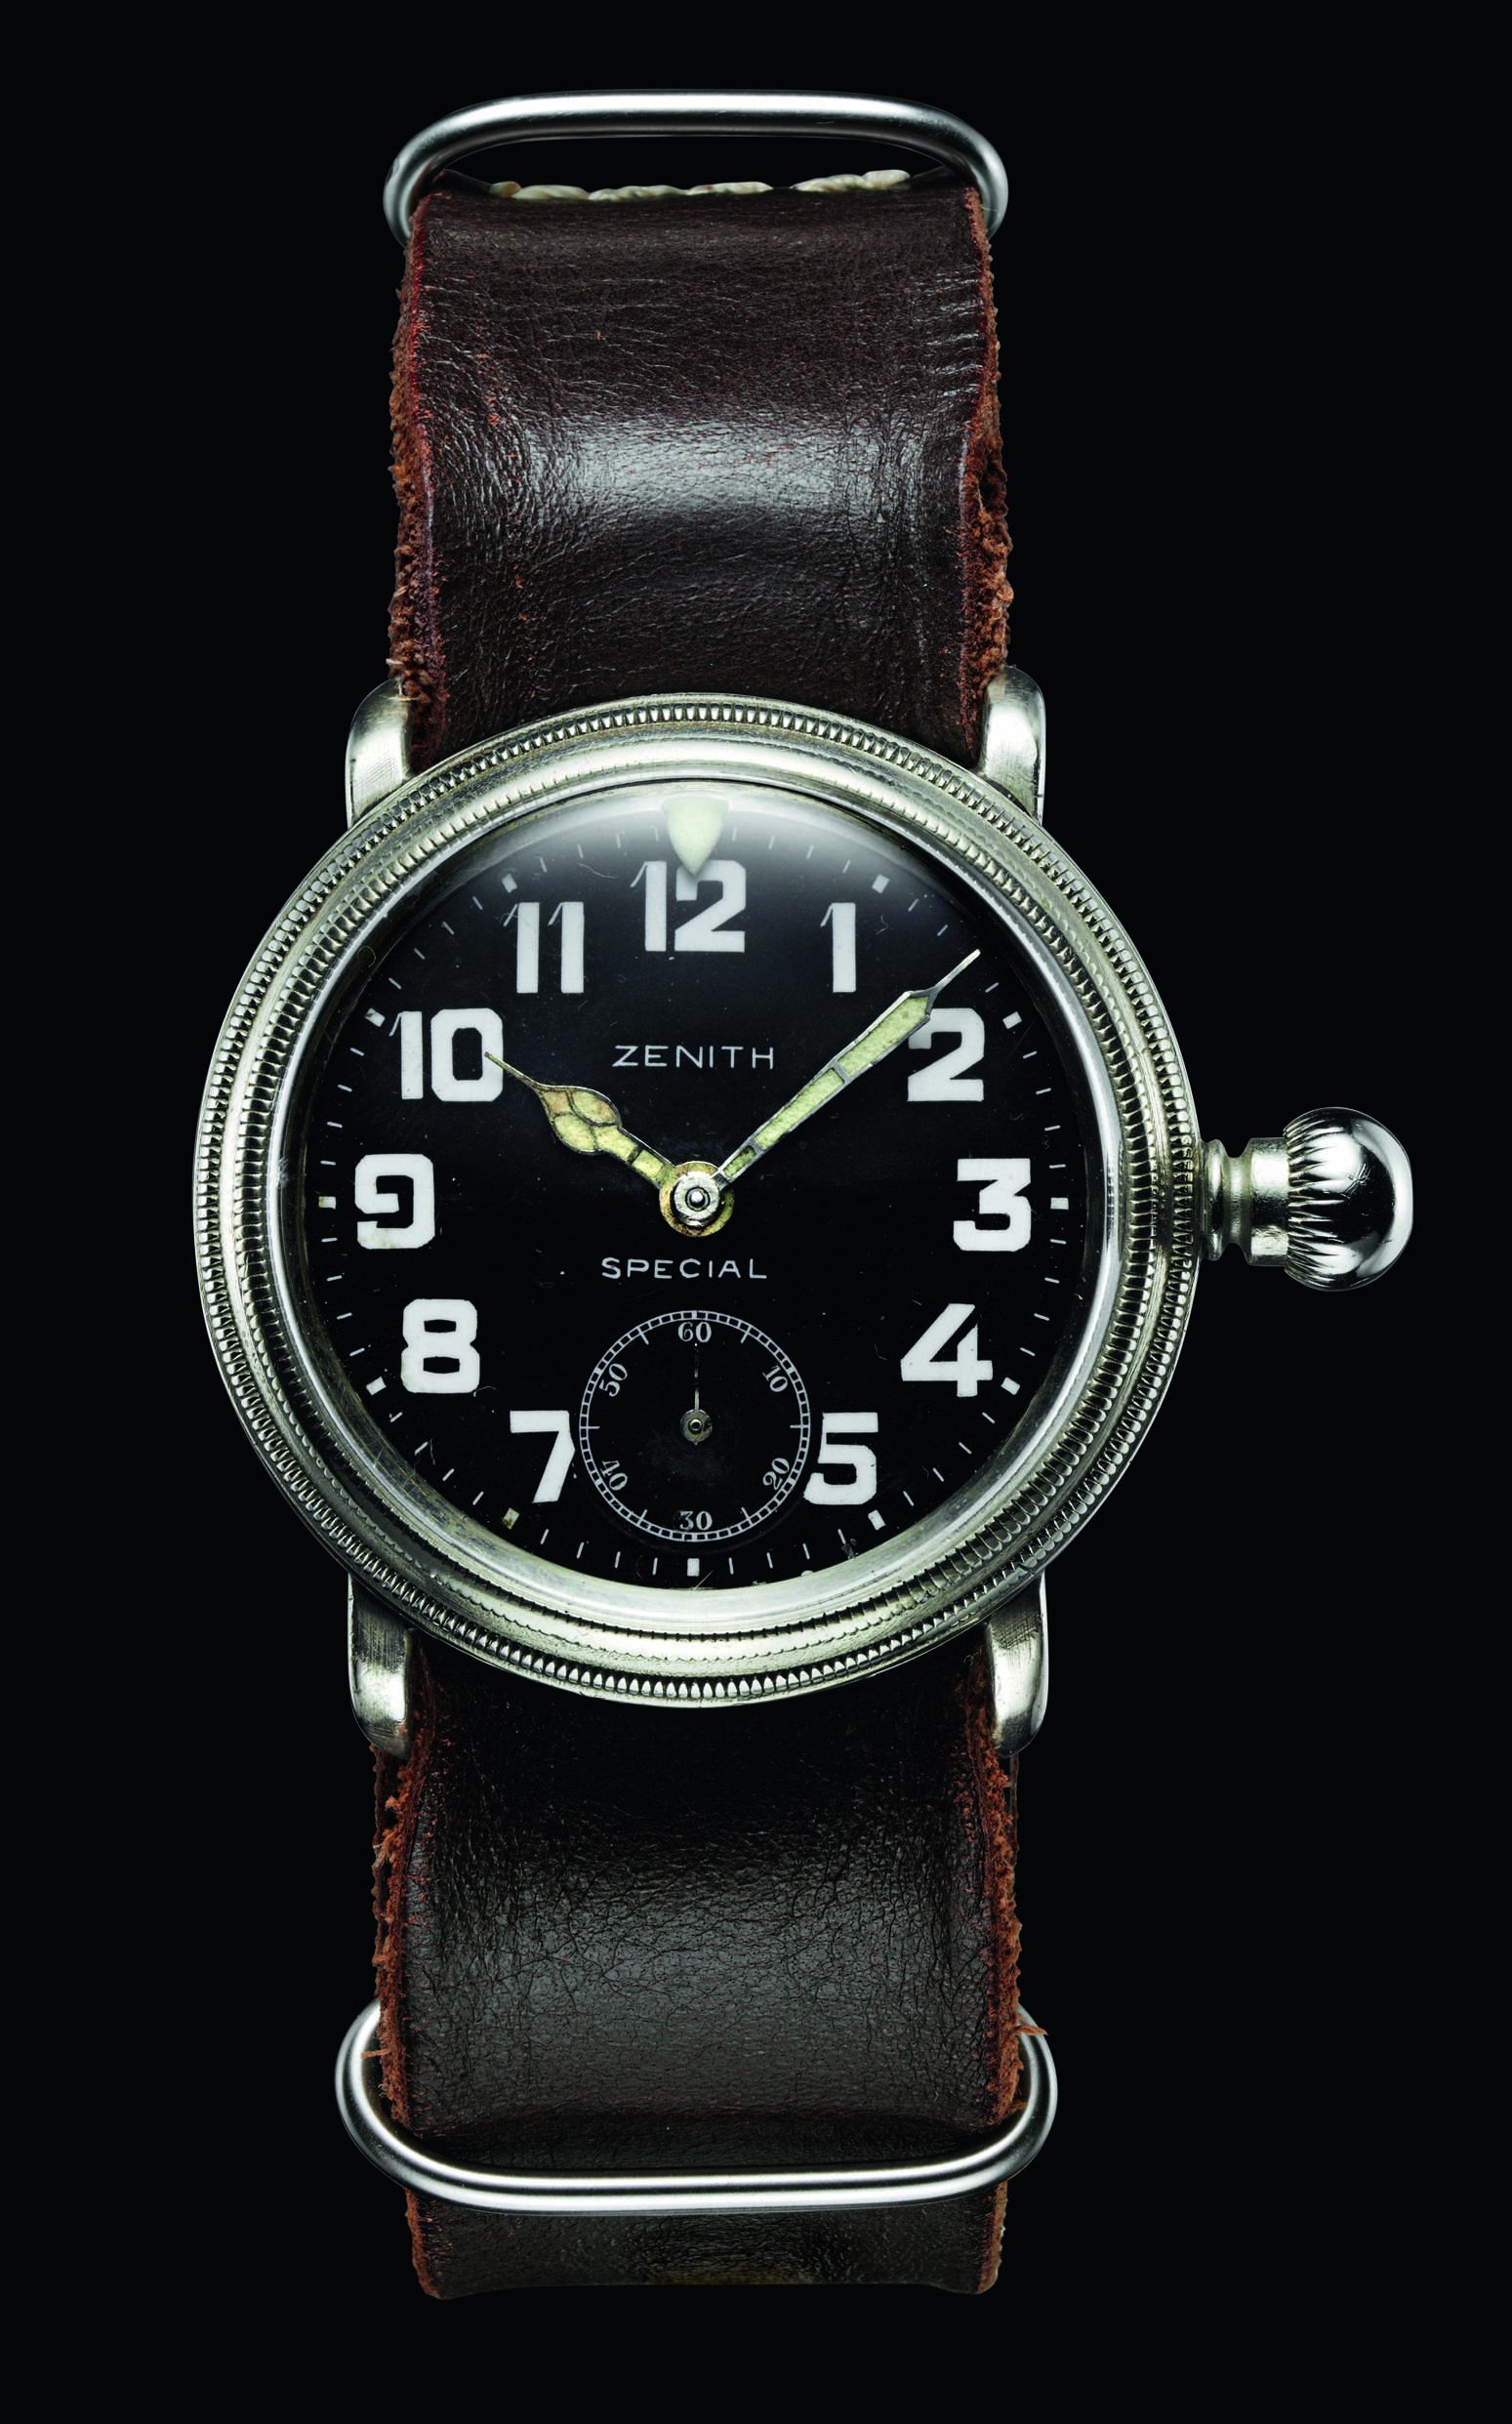 Throwback Thursday: The Zenith Type 20 and the Louis Blériot Watch